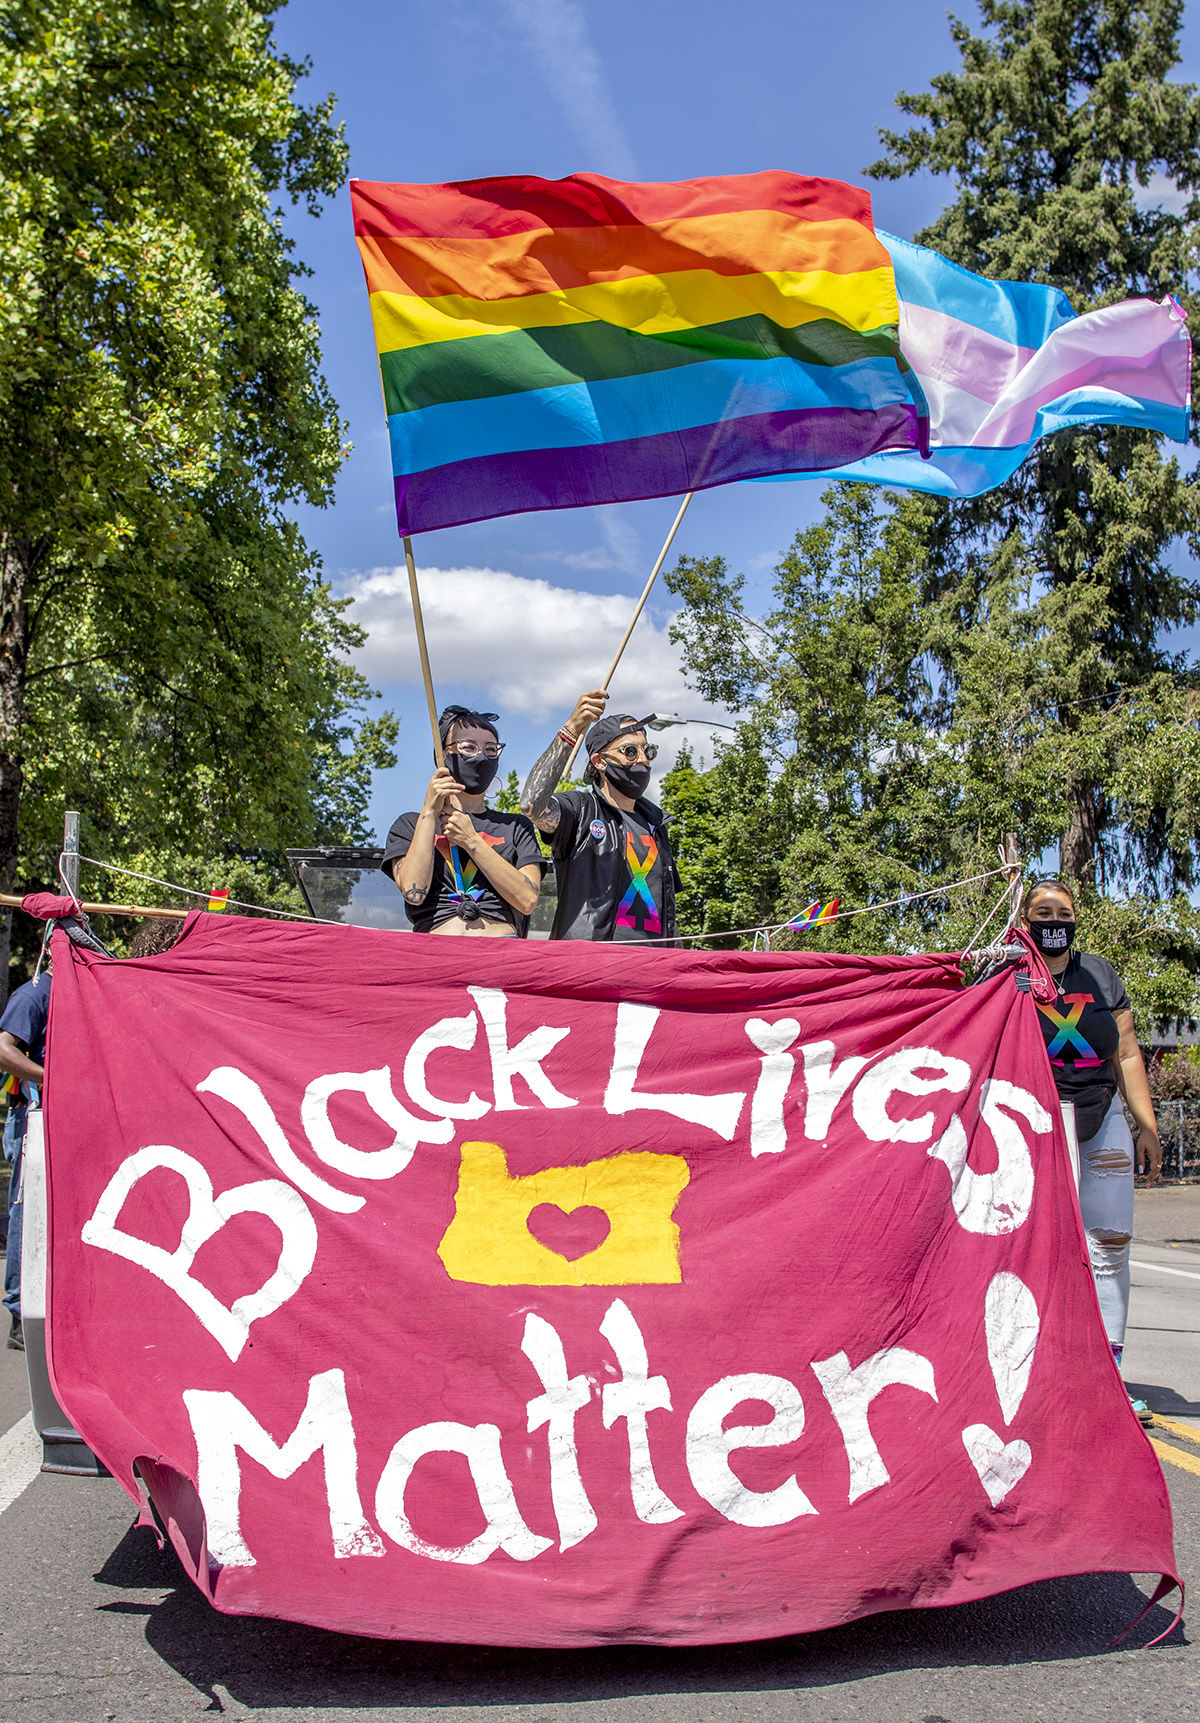 Demonstrators holding flags in the back of a pickup truck leading the march. Approximately 200 people gathered in front of the federal courthouse at noon in Eugene, Oregon, on Saturday to celebrate and march for Black Trans Lives. The march, organized by local groups Black Unity and Eugene Pride, made its way through the streets of Eugene until arriving at Kiwanis/Skinner Butte Park. Once at the park marchers stopped to enjoy food, music and demonstrations held by the march organizers. Photo by Payton Bruni